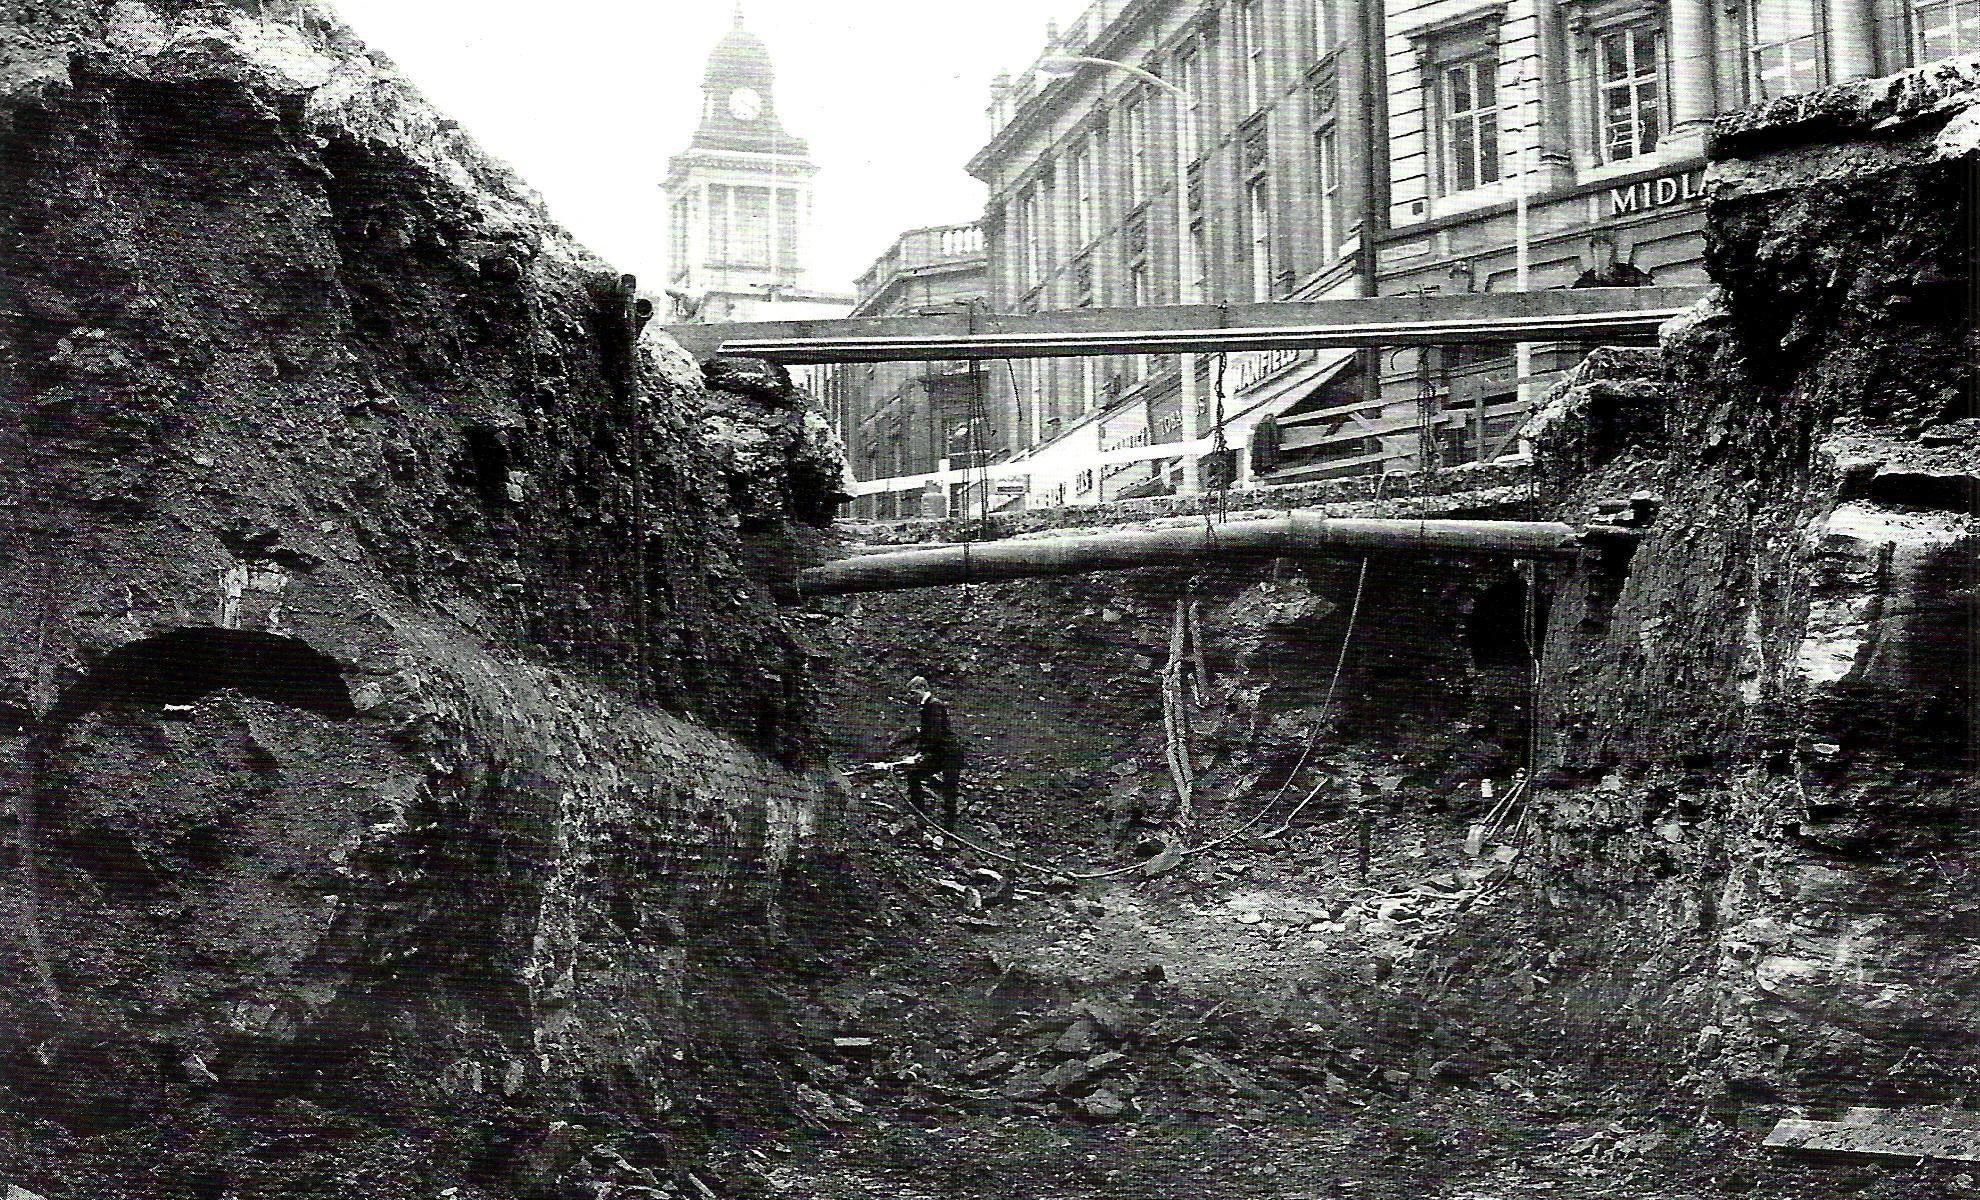 Victorian Sewers under Castle Square